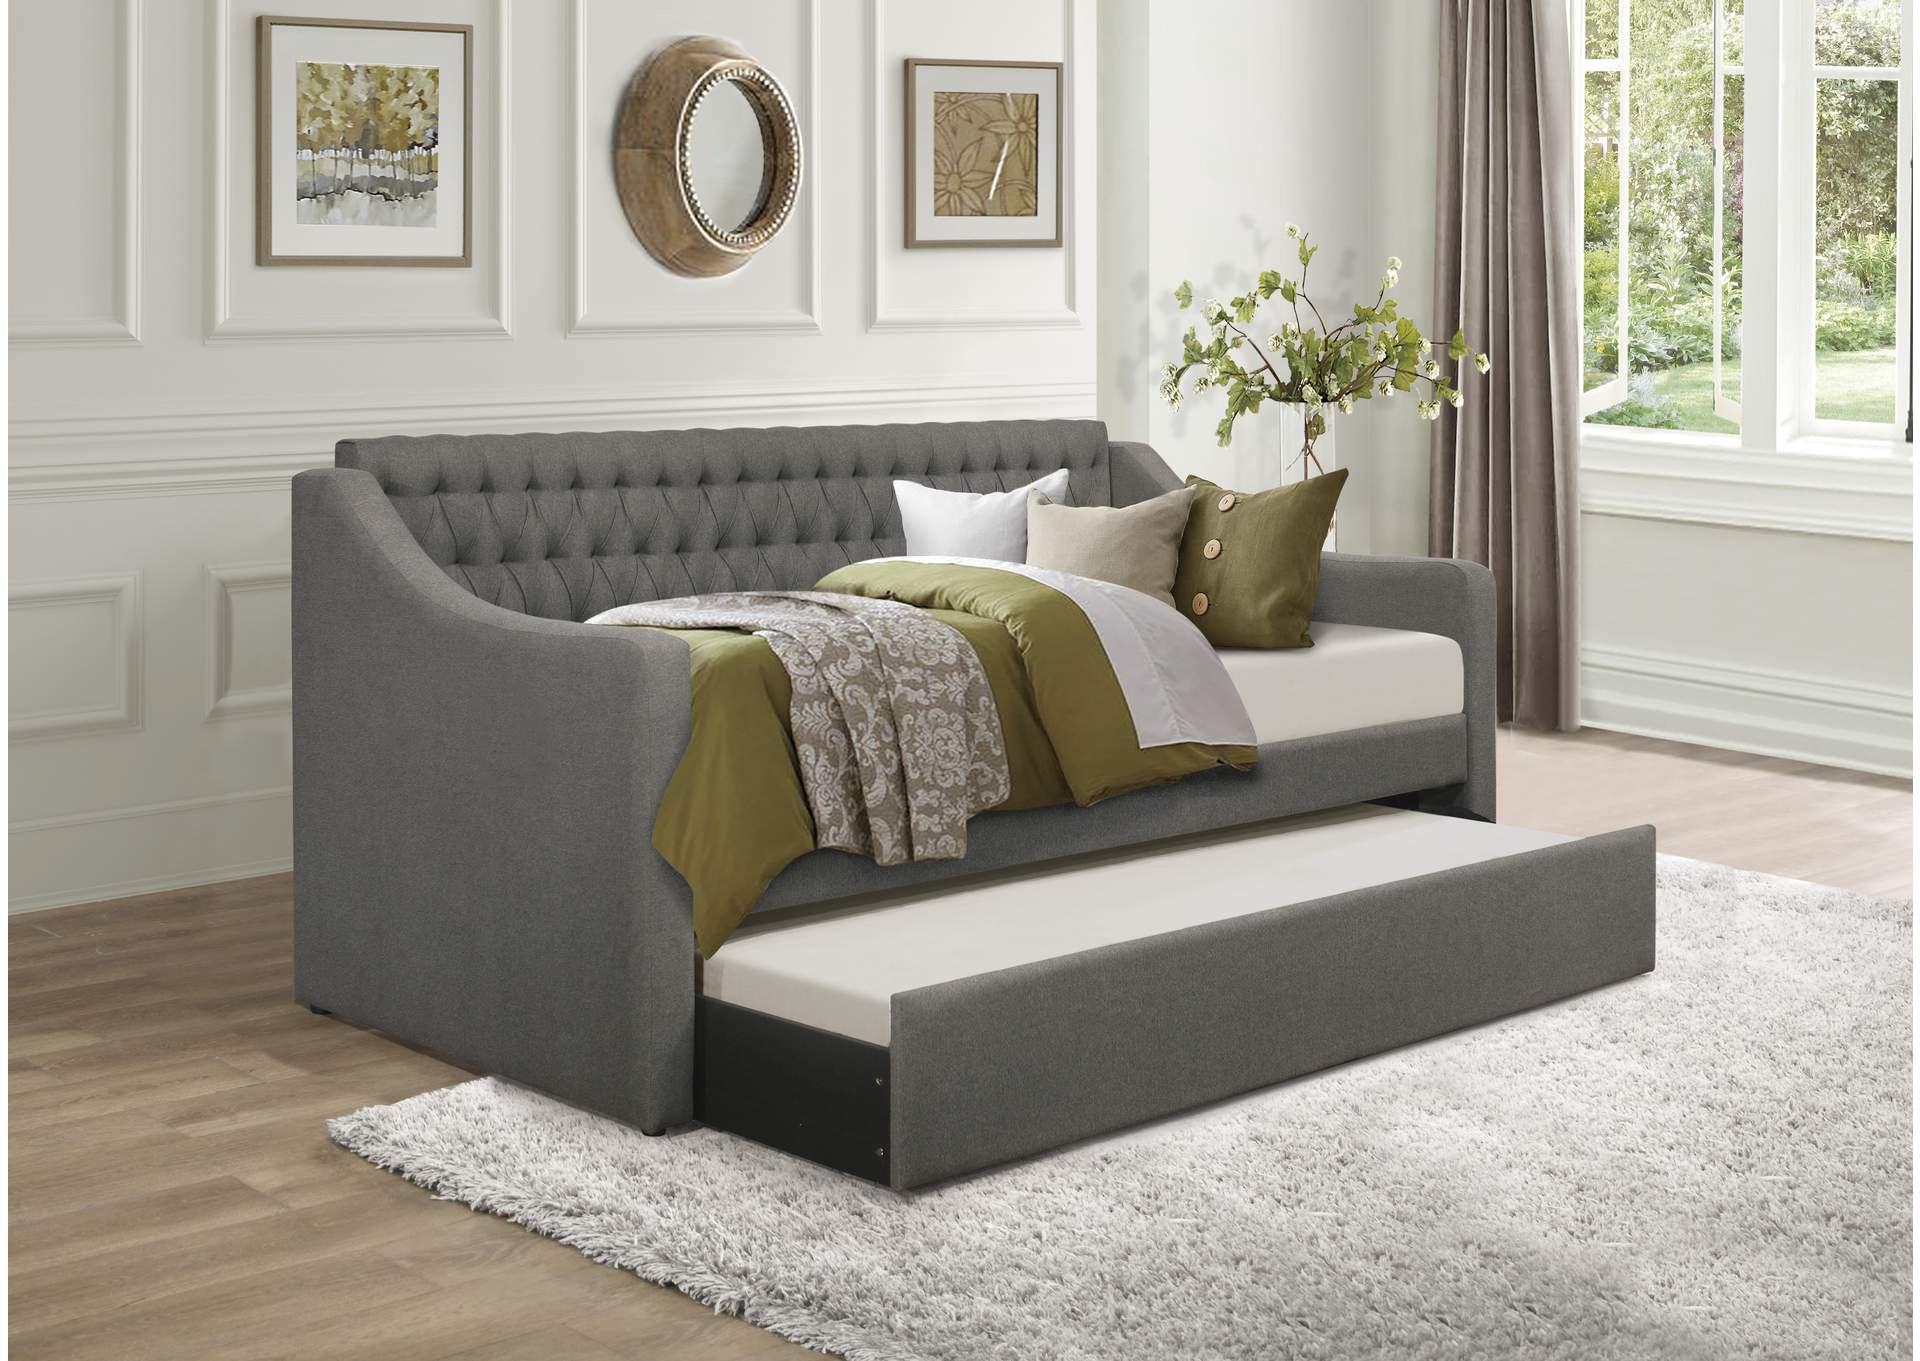 LaBelle Grey Daybed W/ Trundle,Homelegance